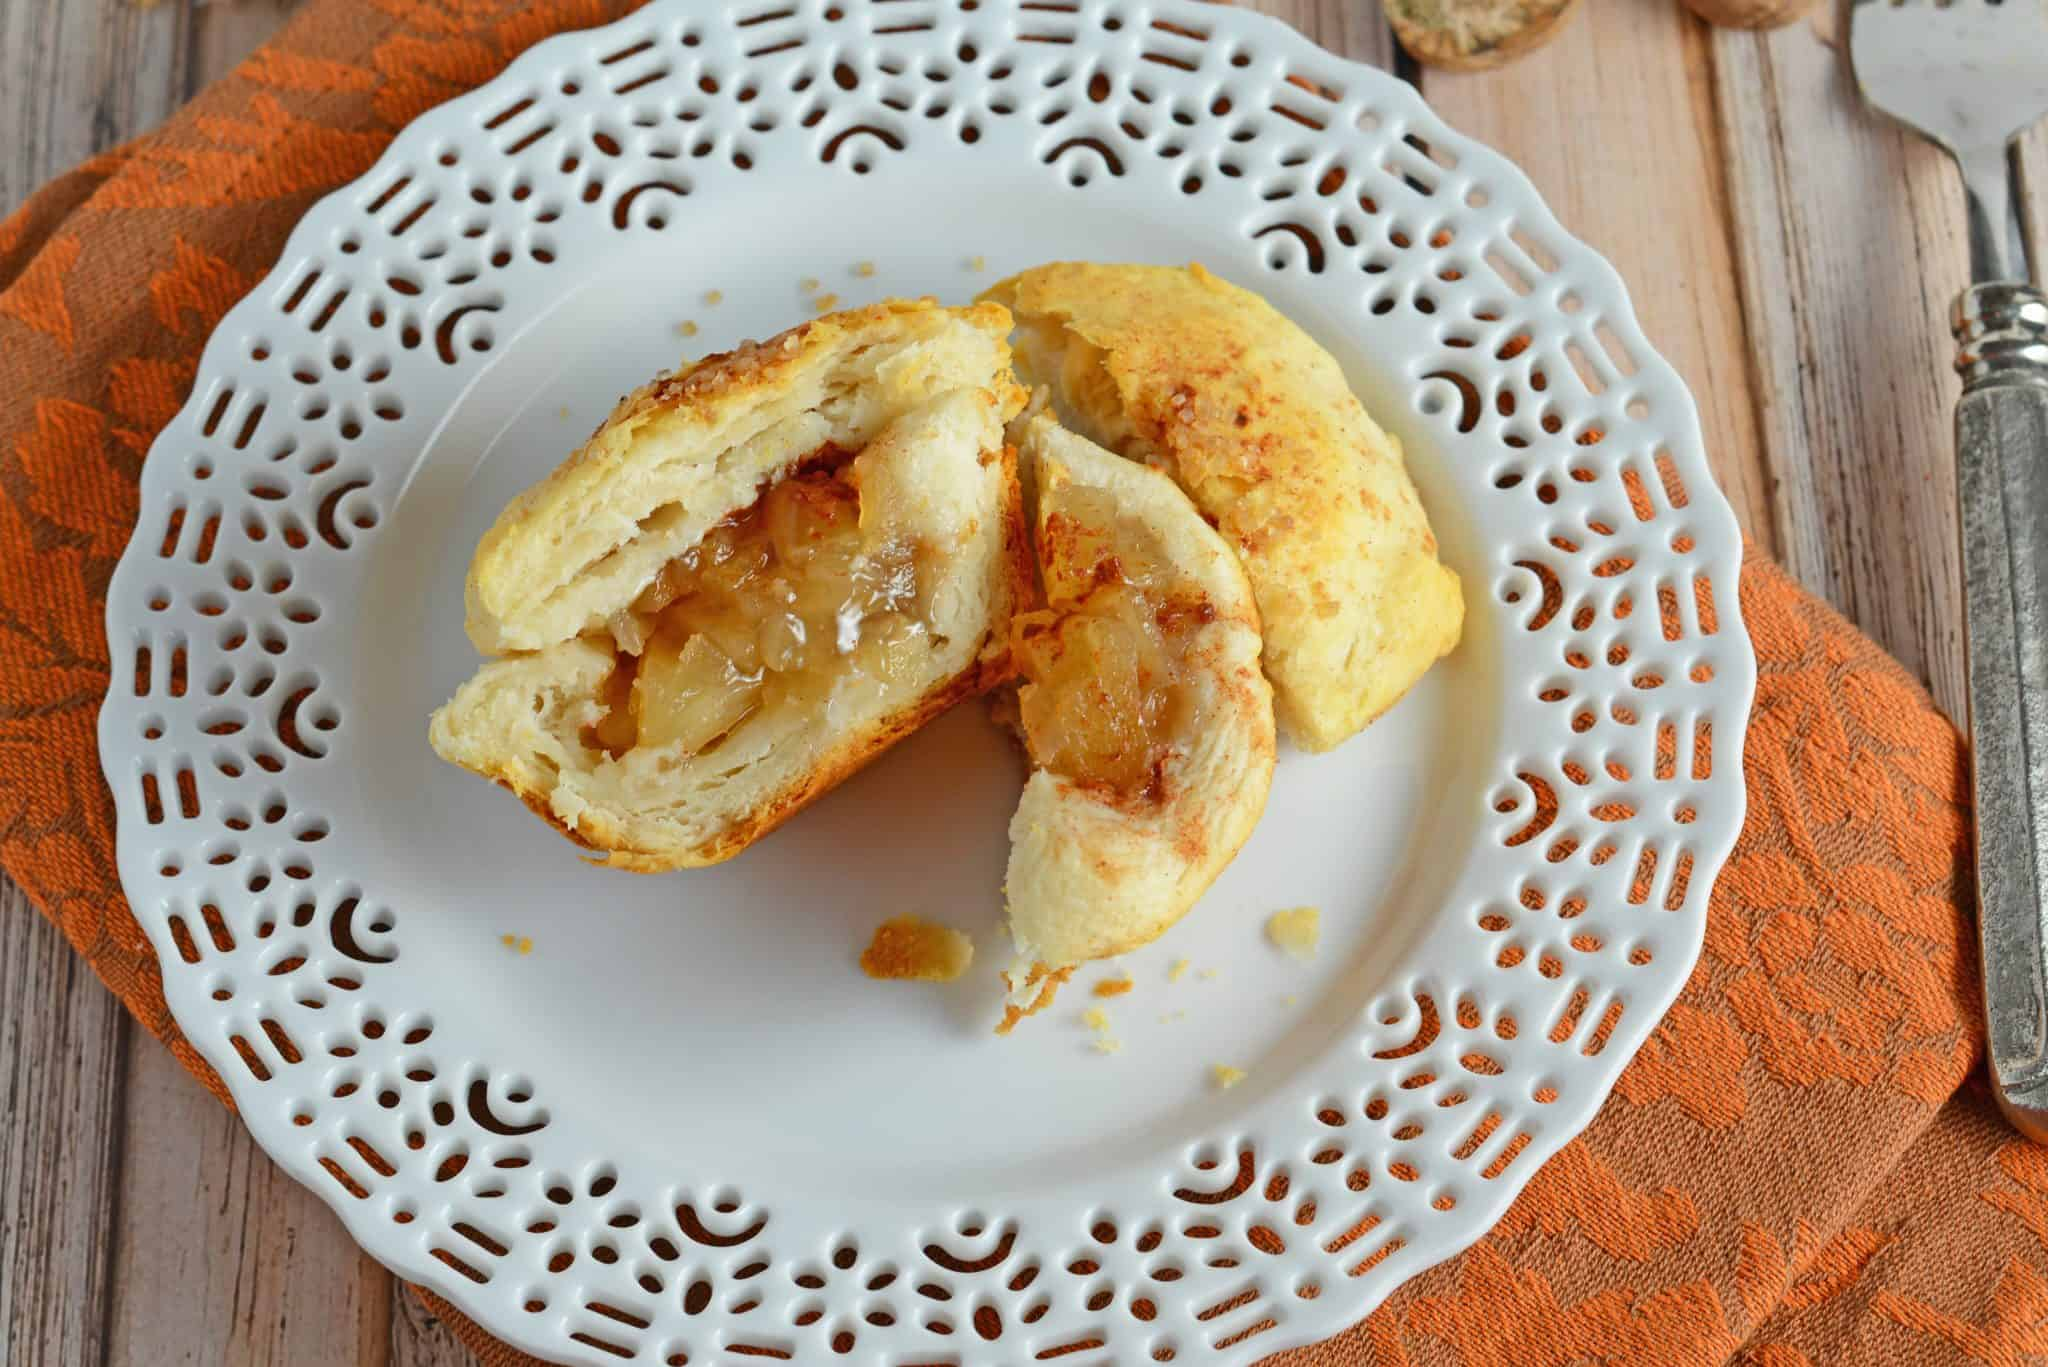 Easy Apple Dumplings can be made for breakfast or as a dessert! Pair your Apple Dumplings Recipe with vanilla ice cream or syrup for a delicious treat! #appledumplings #appledumplingsrecipe #recipeswithapples www.savoryexperiments.com